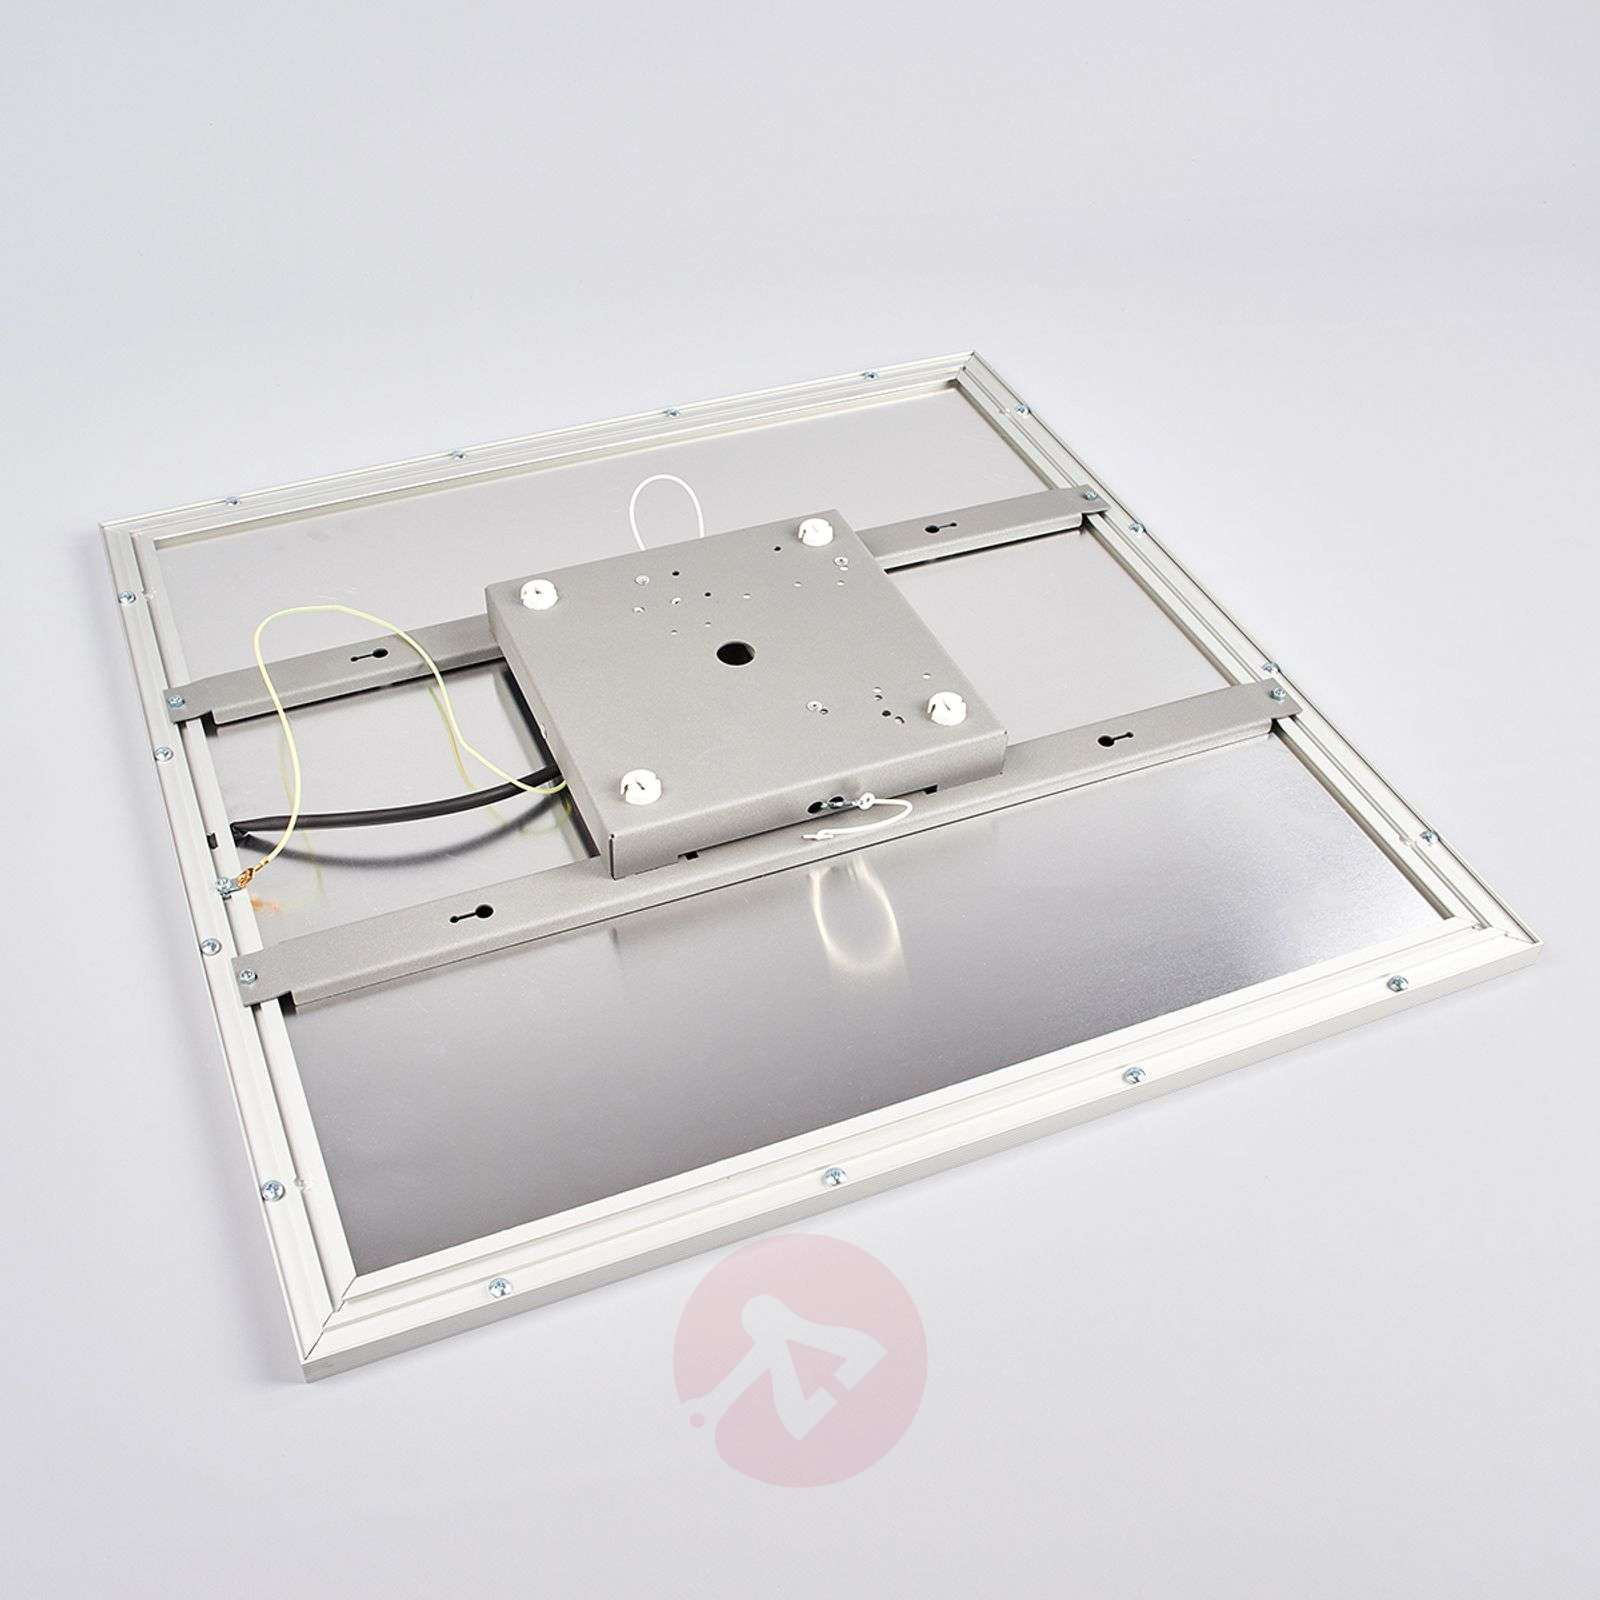 All-in-one square LED panel dimmable-3002143X-03